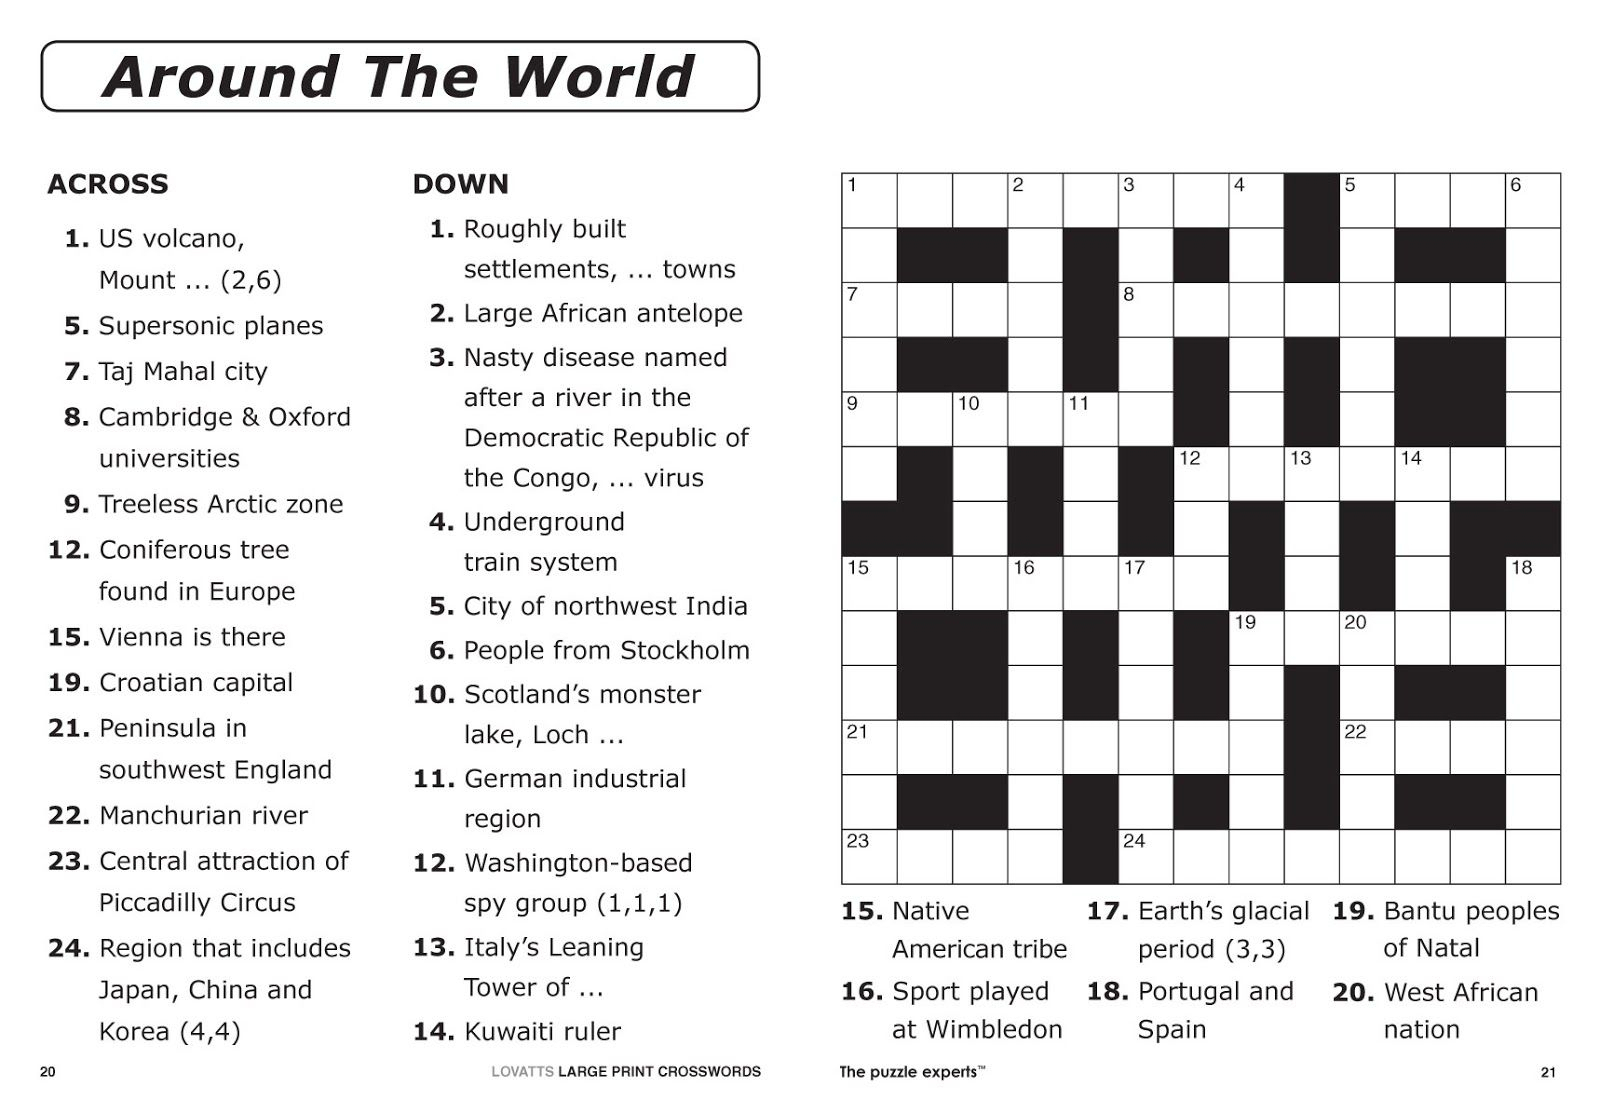 Free Printable Large Print Crossword Puzzles   M3U8 - Printable Puzzles For 13 Year Olds